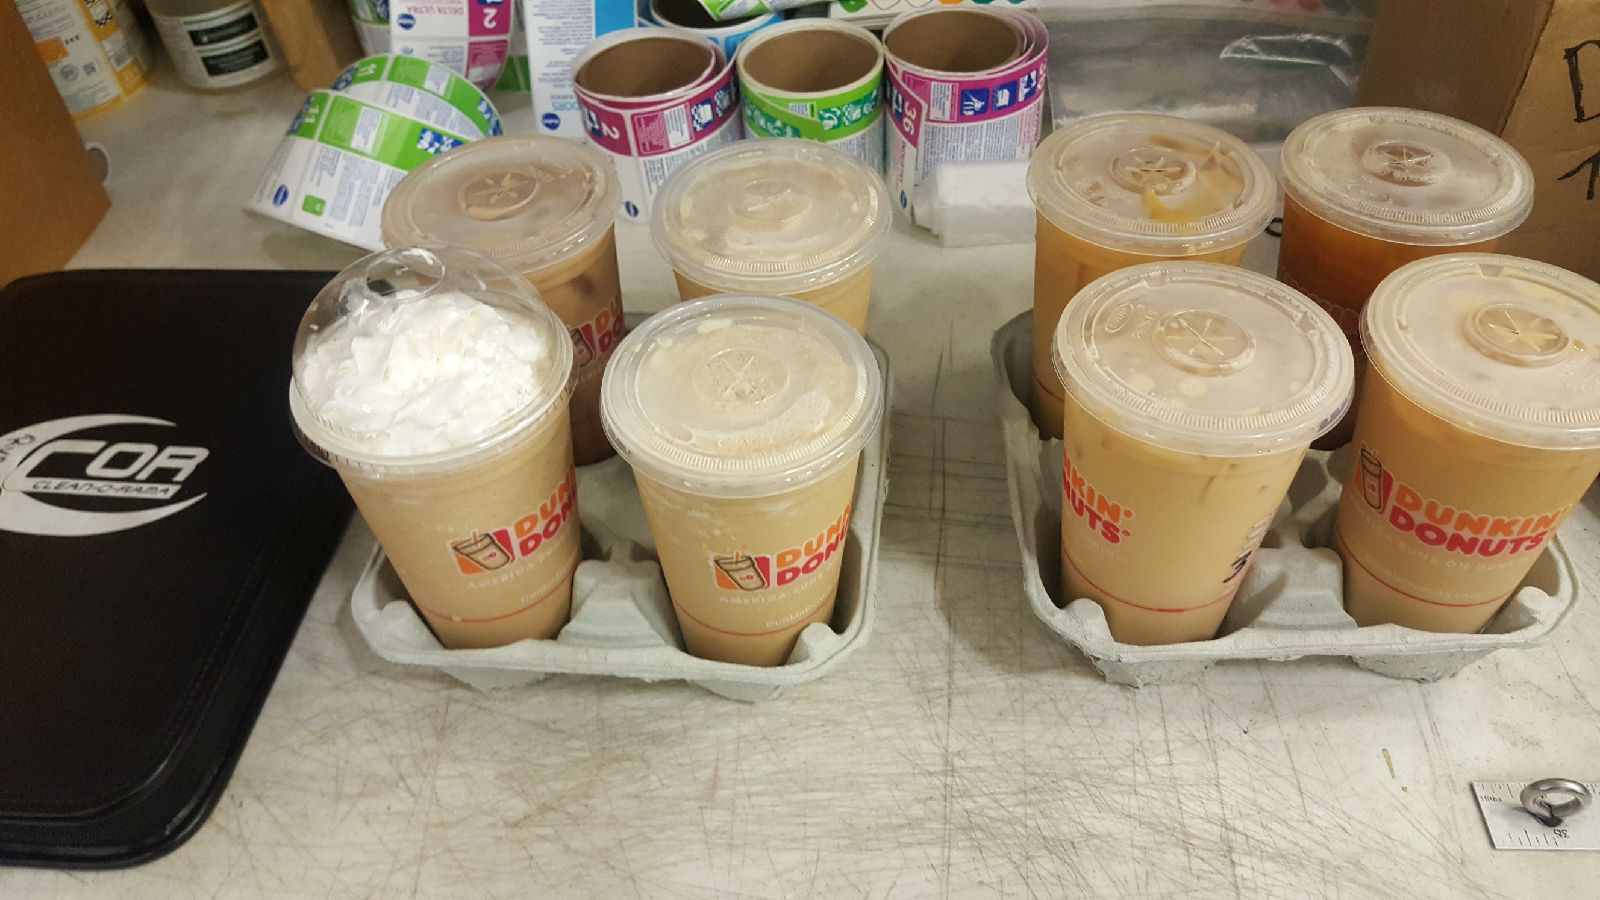 A few of our purchased ice coffees from Dunkin' Donuts.